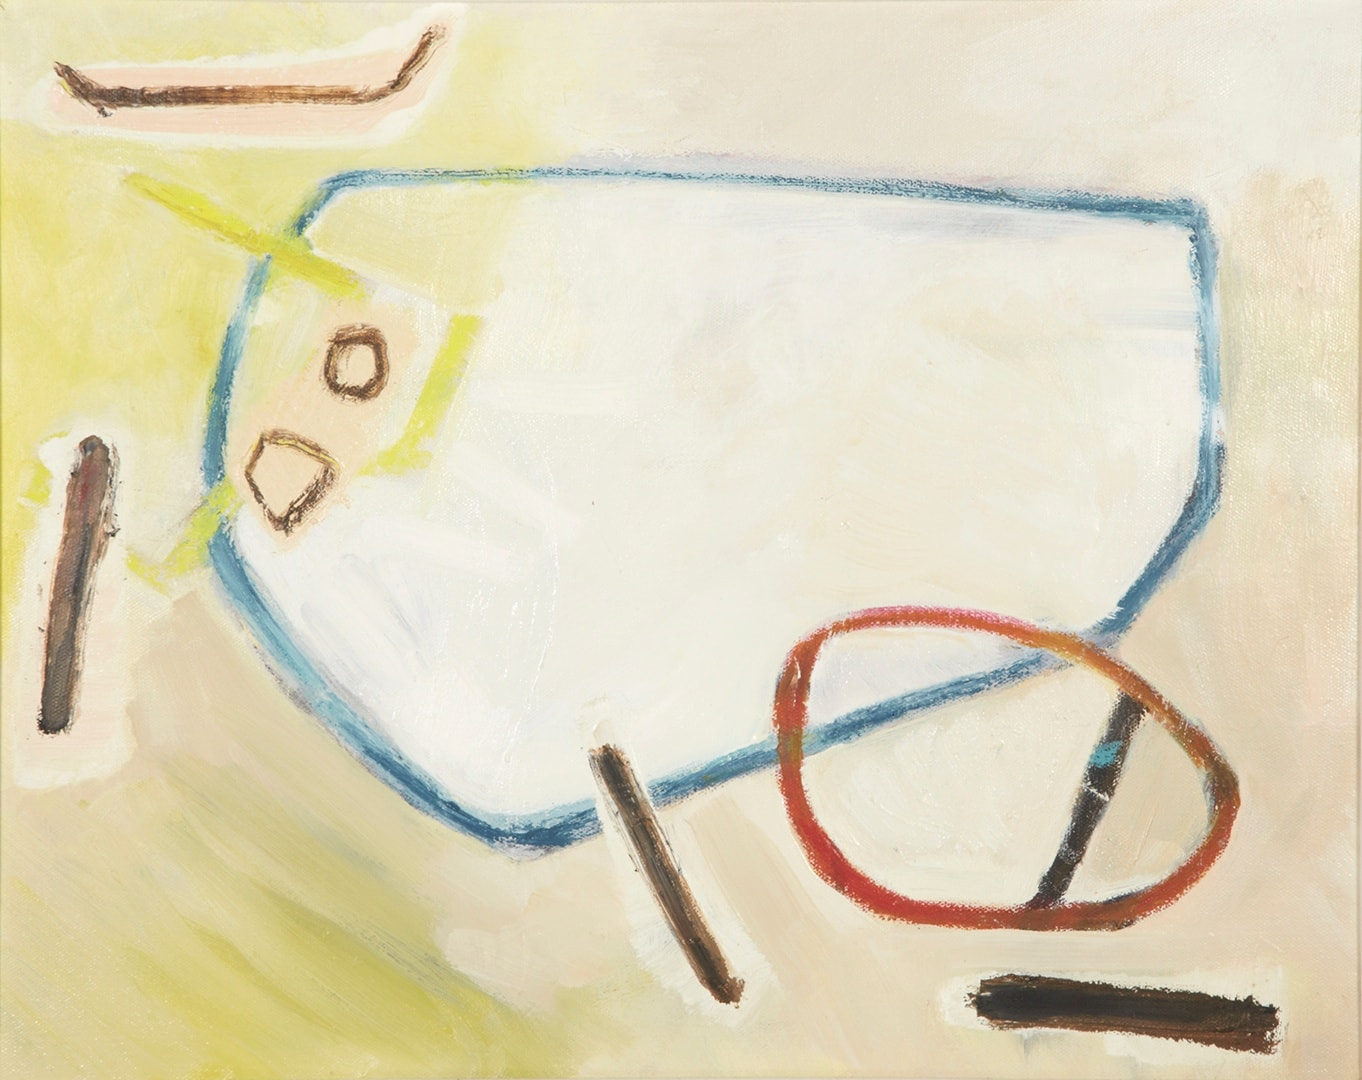 The disassembled cow